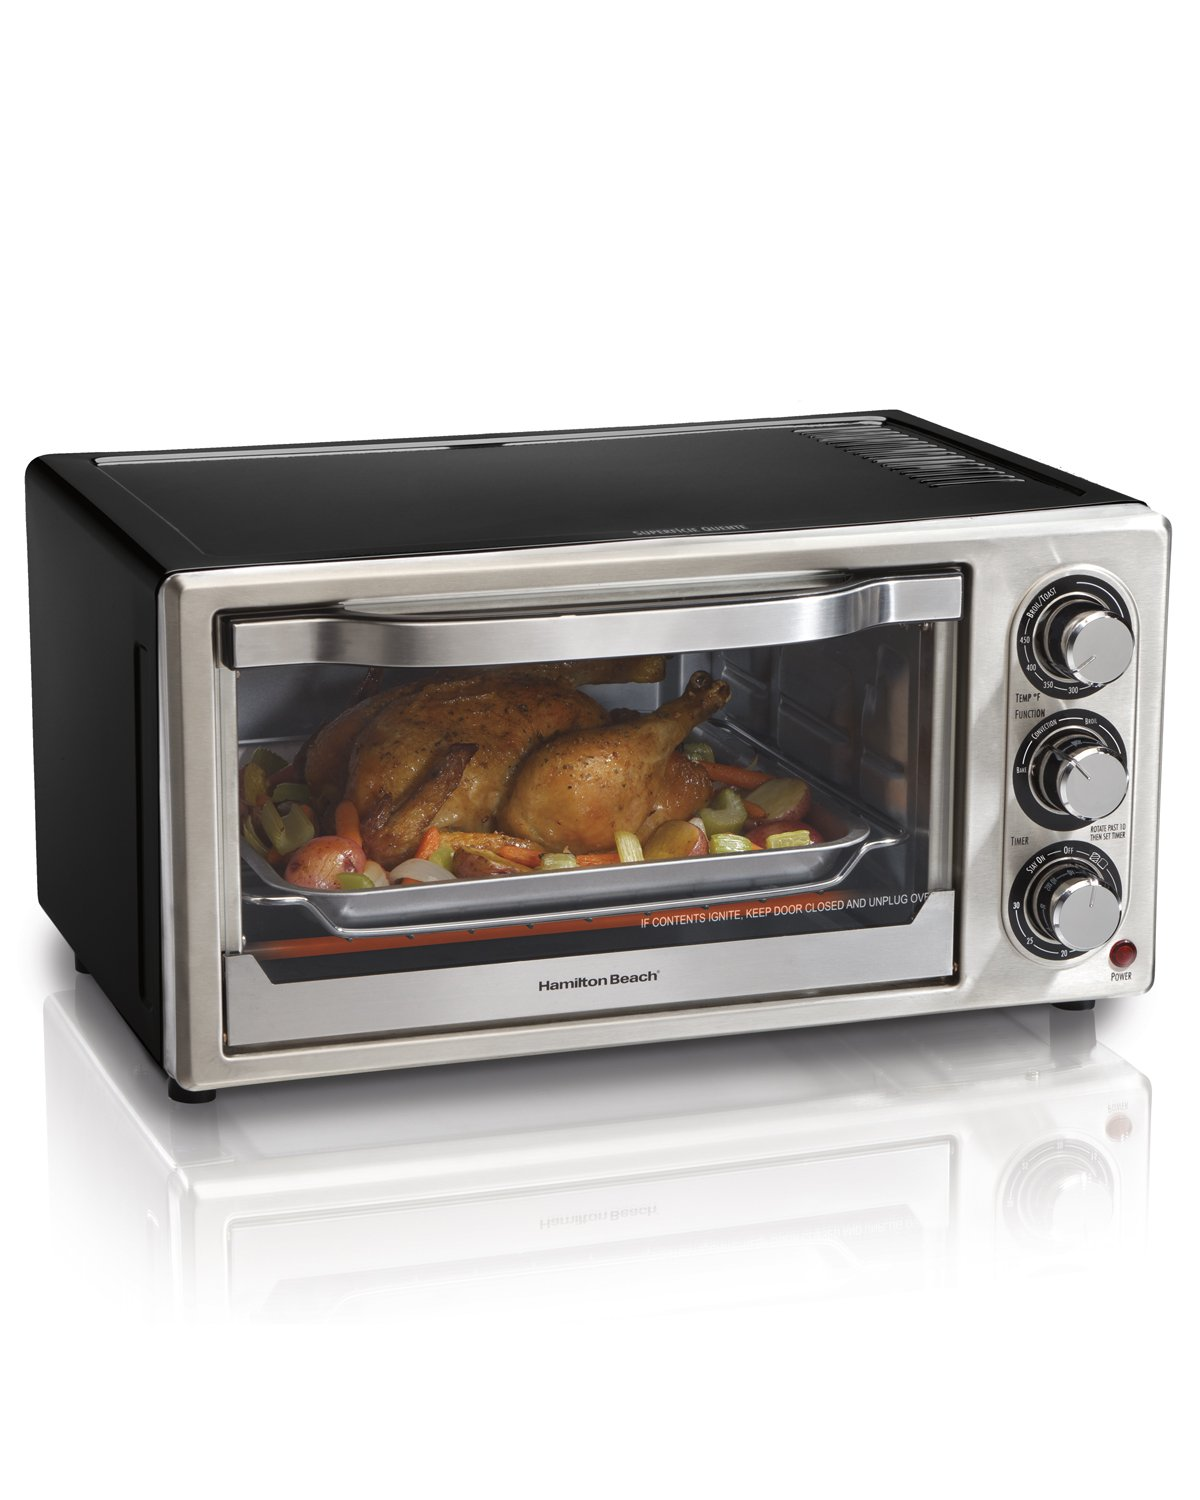 Hamilton Beach 31512 Convection 6-Slice Toaster Oven